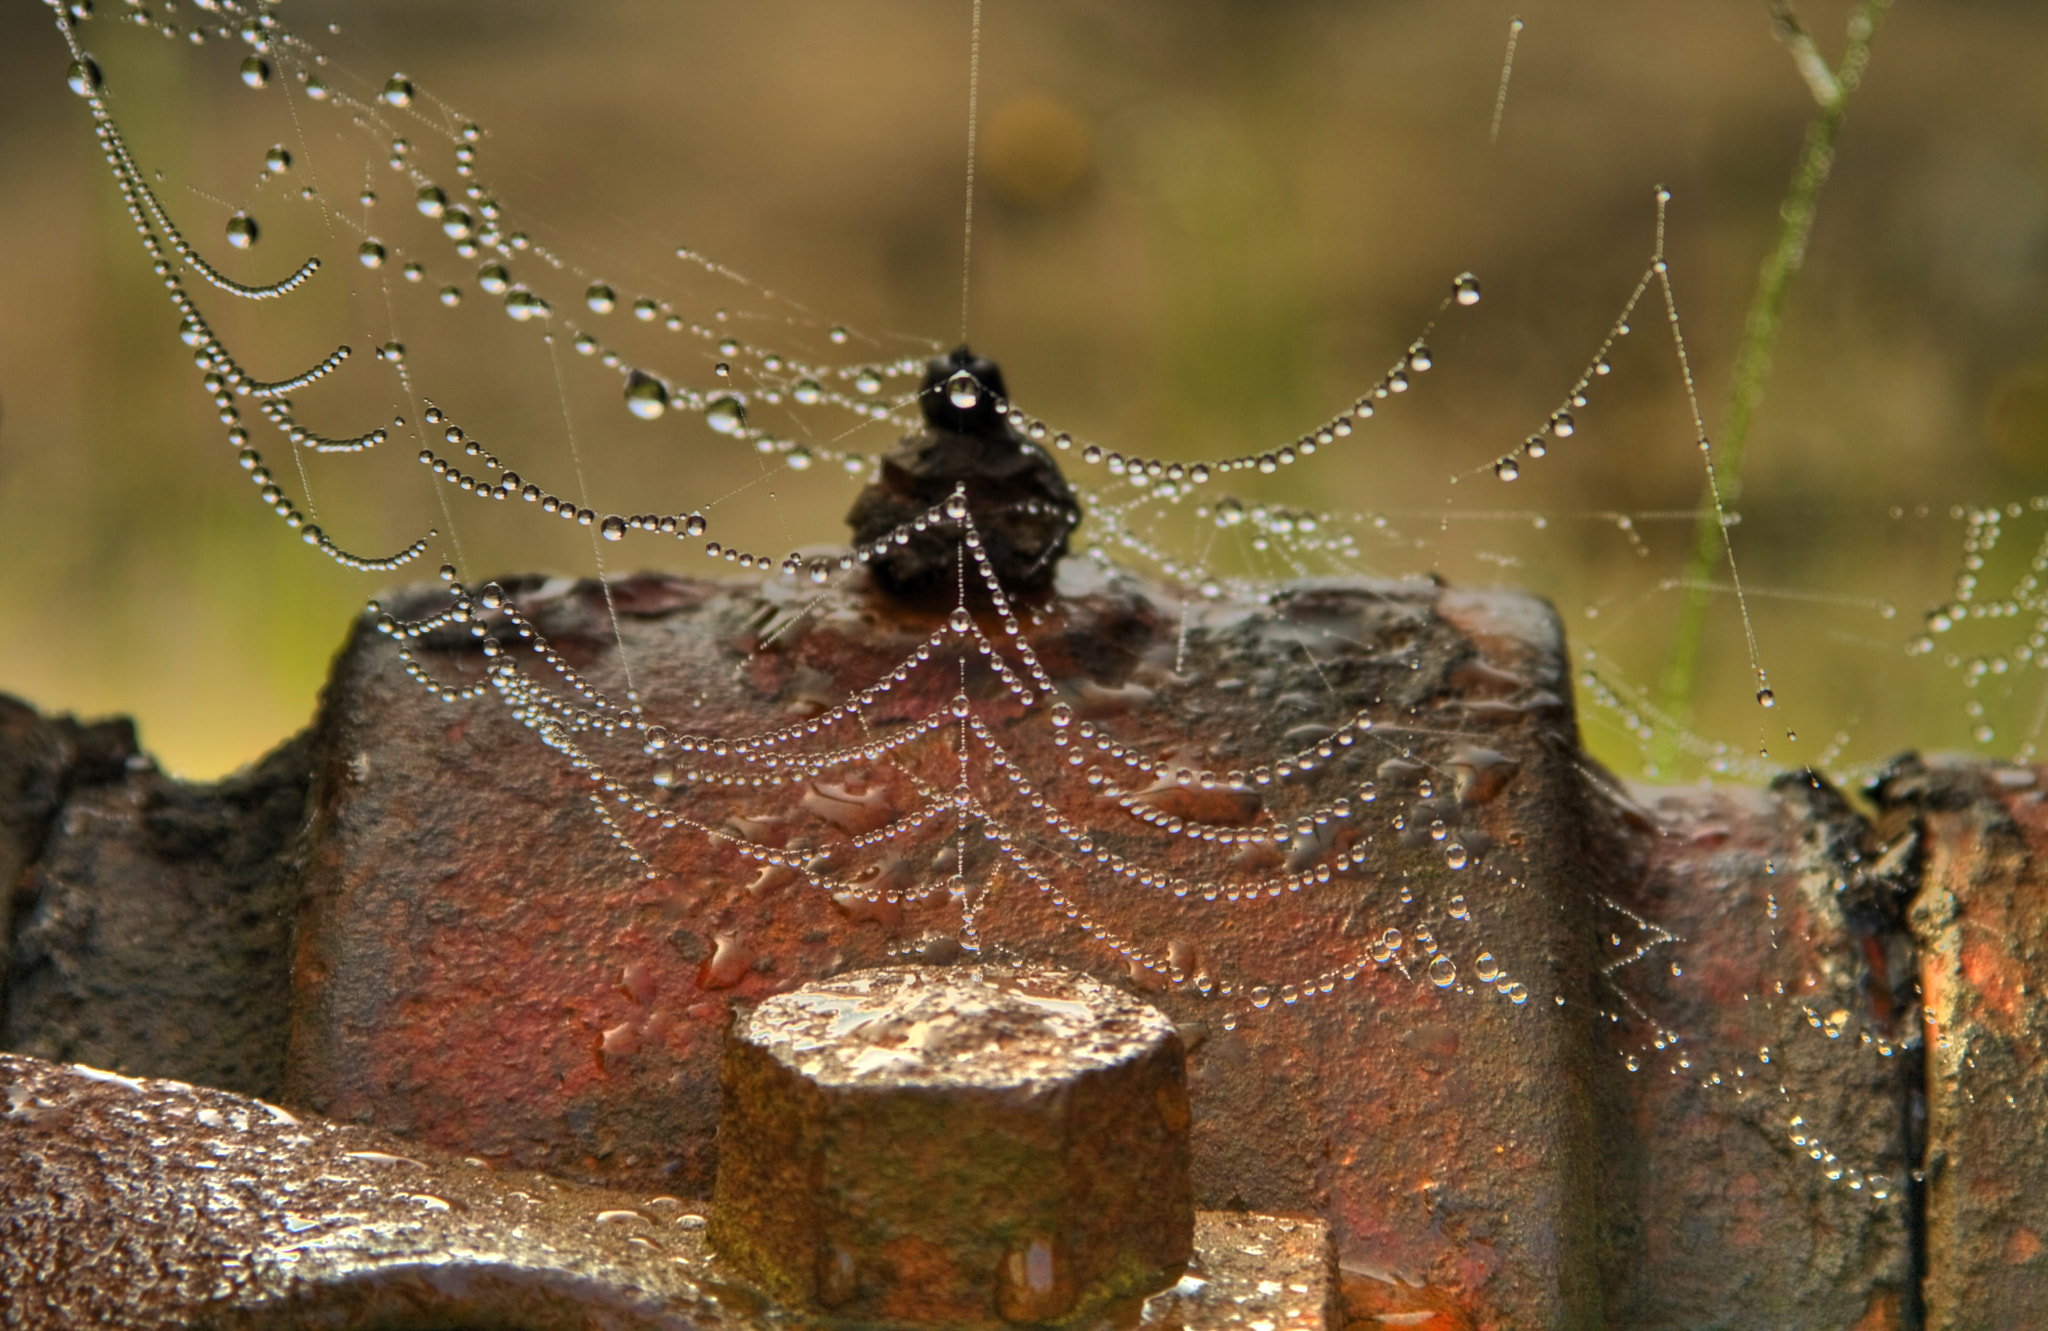 Photograph web by Darrick Moran on 500px